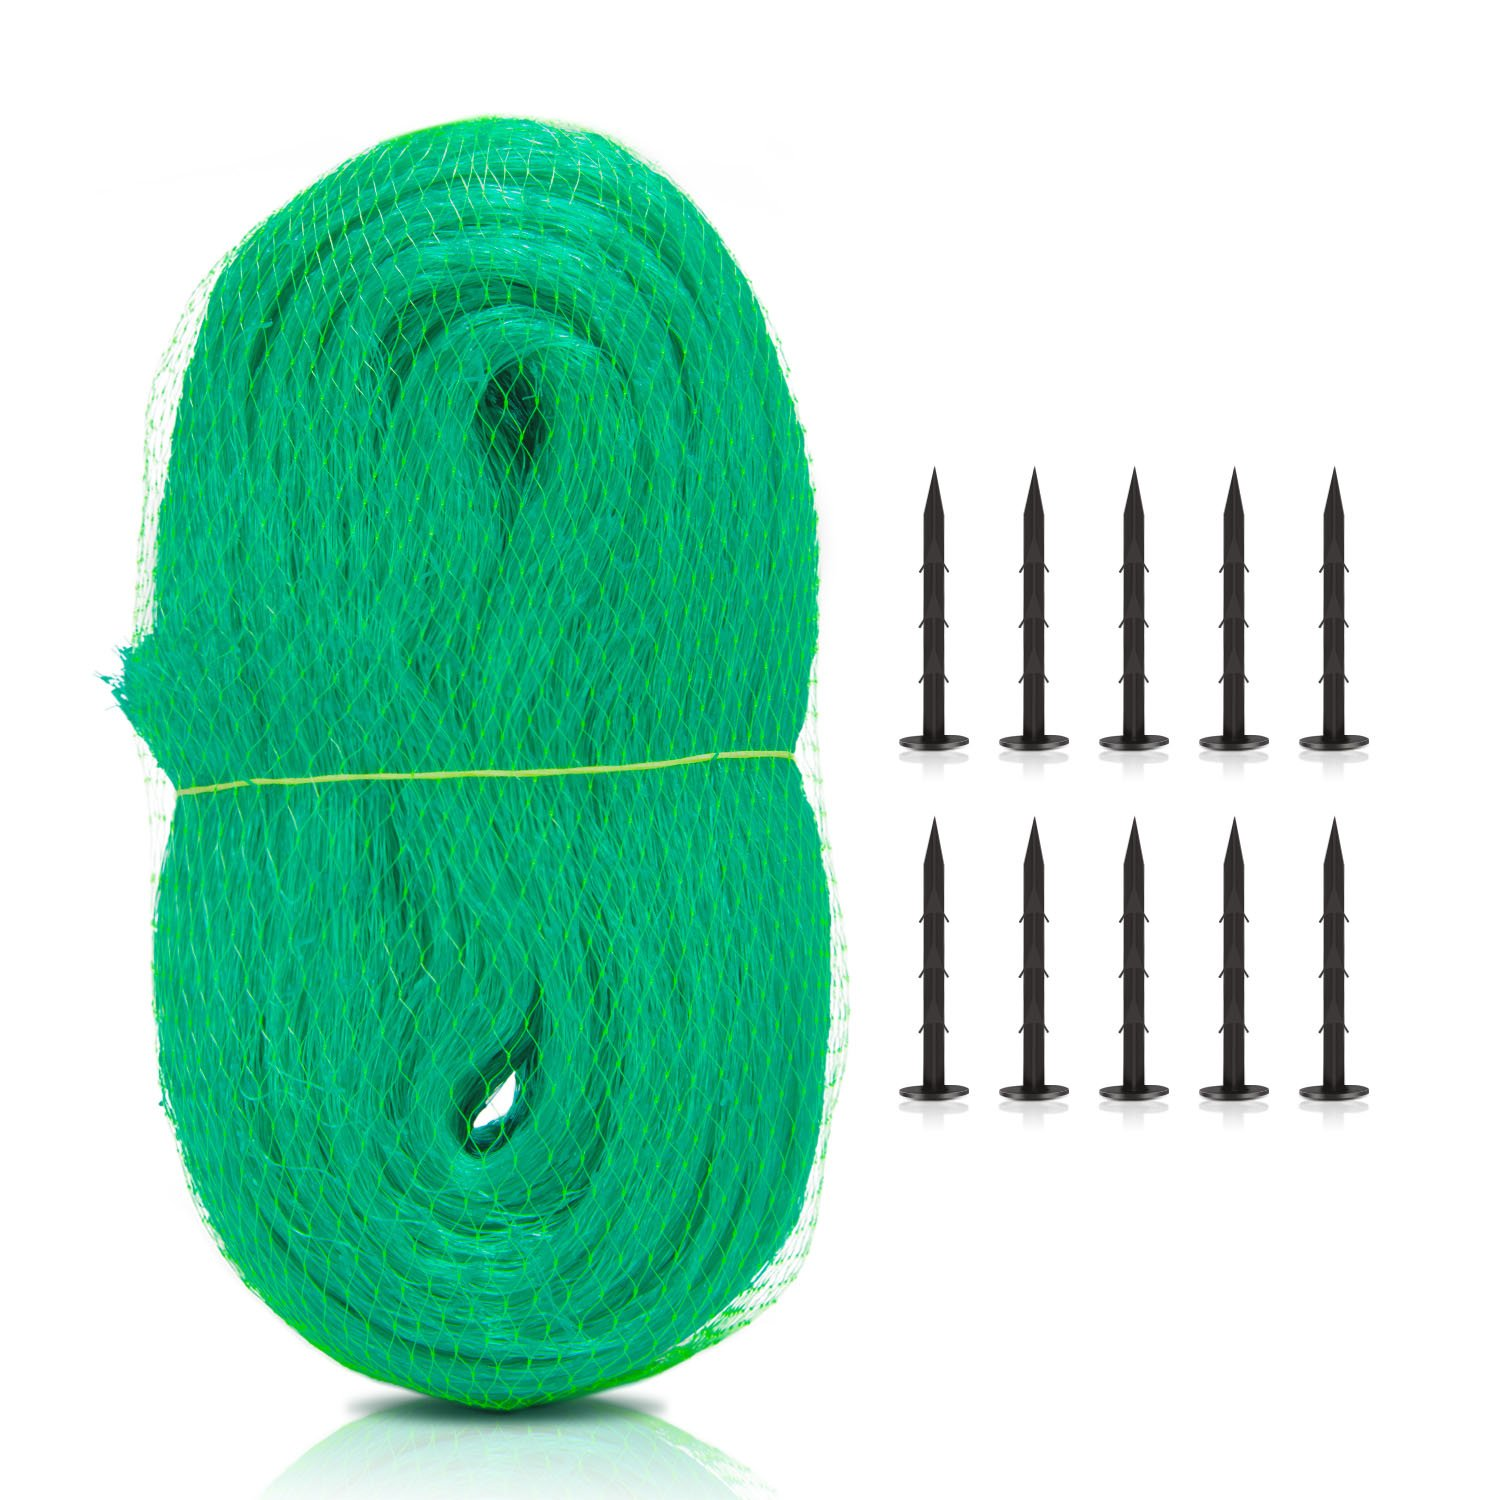 Deyard 33 x 13 Ft Green PE Material Anti-Bird Net Protect Plant Garden Fruits Fencing Mesh Protect Fruits from Birds with 10pcs Nails